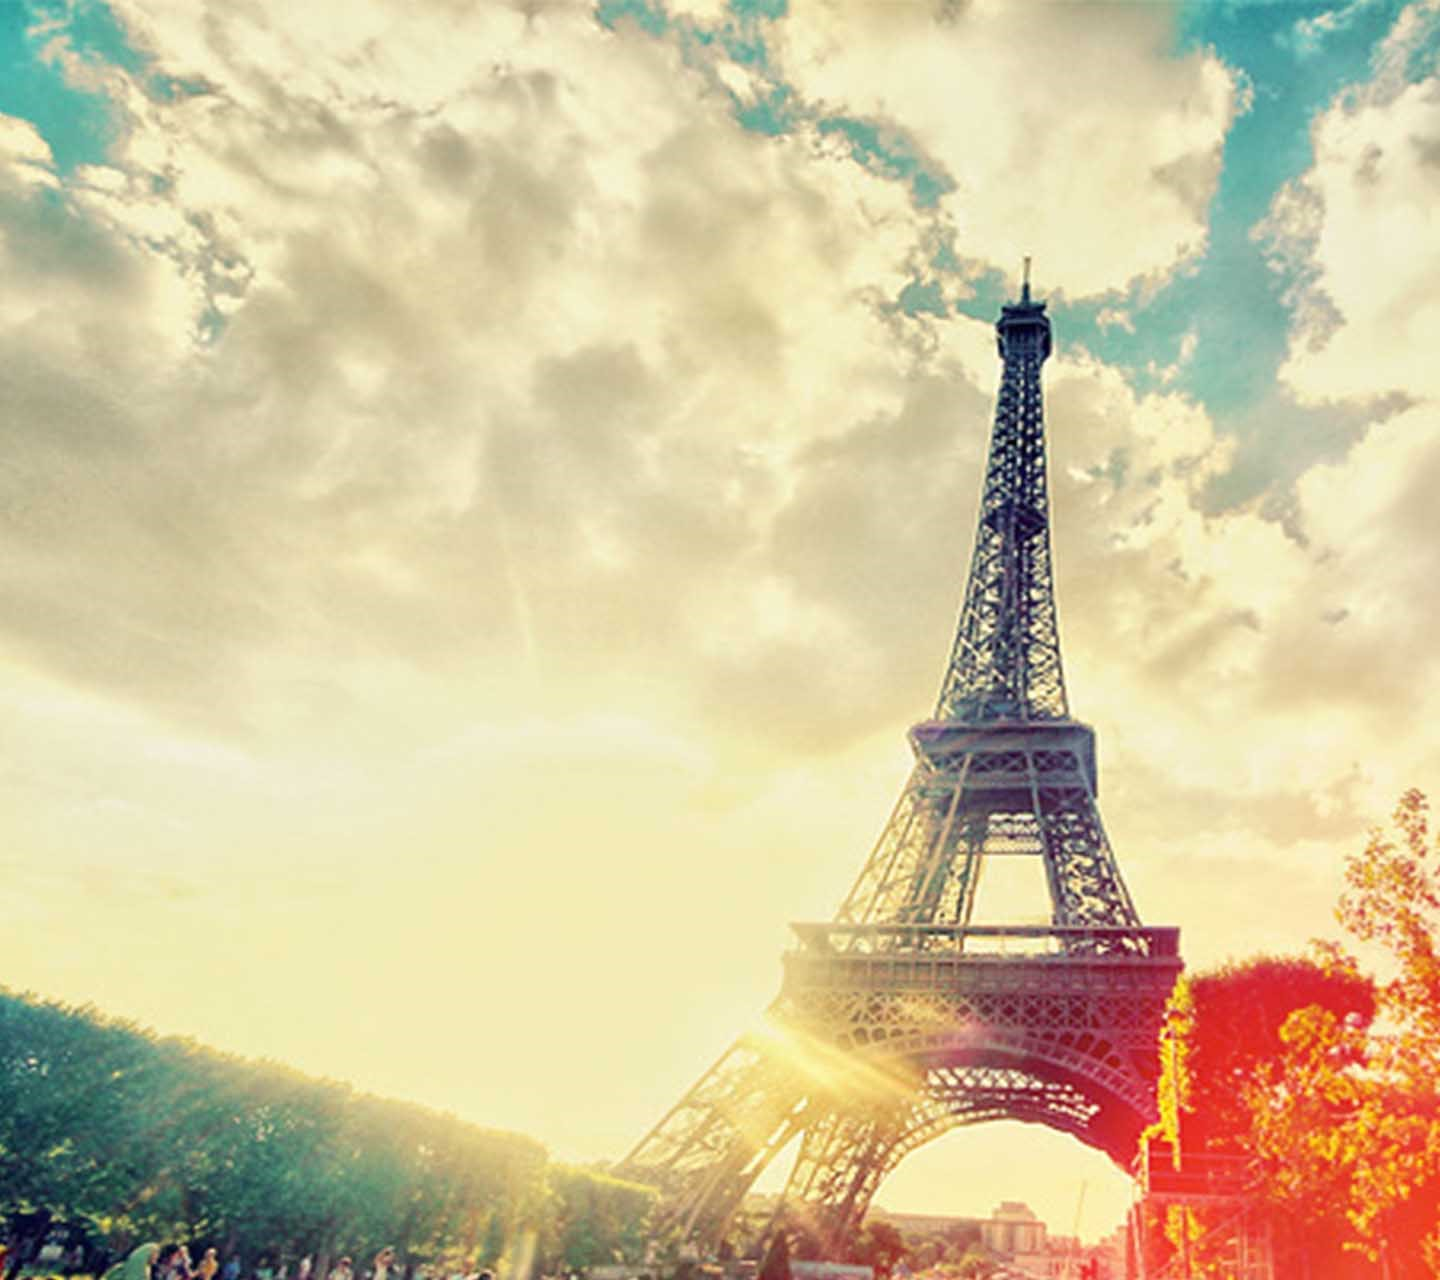 Paris wallpaper 10133024